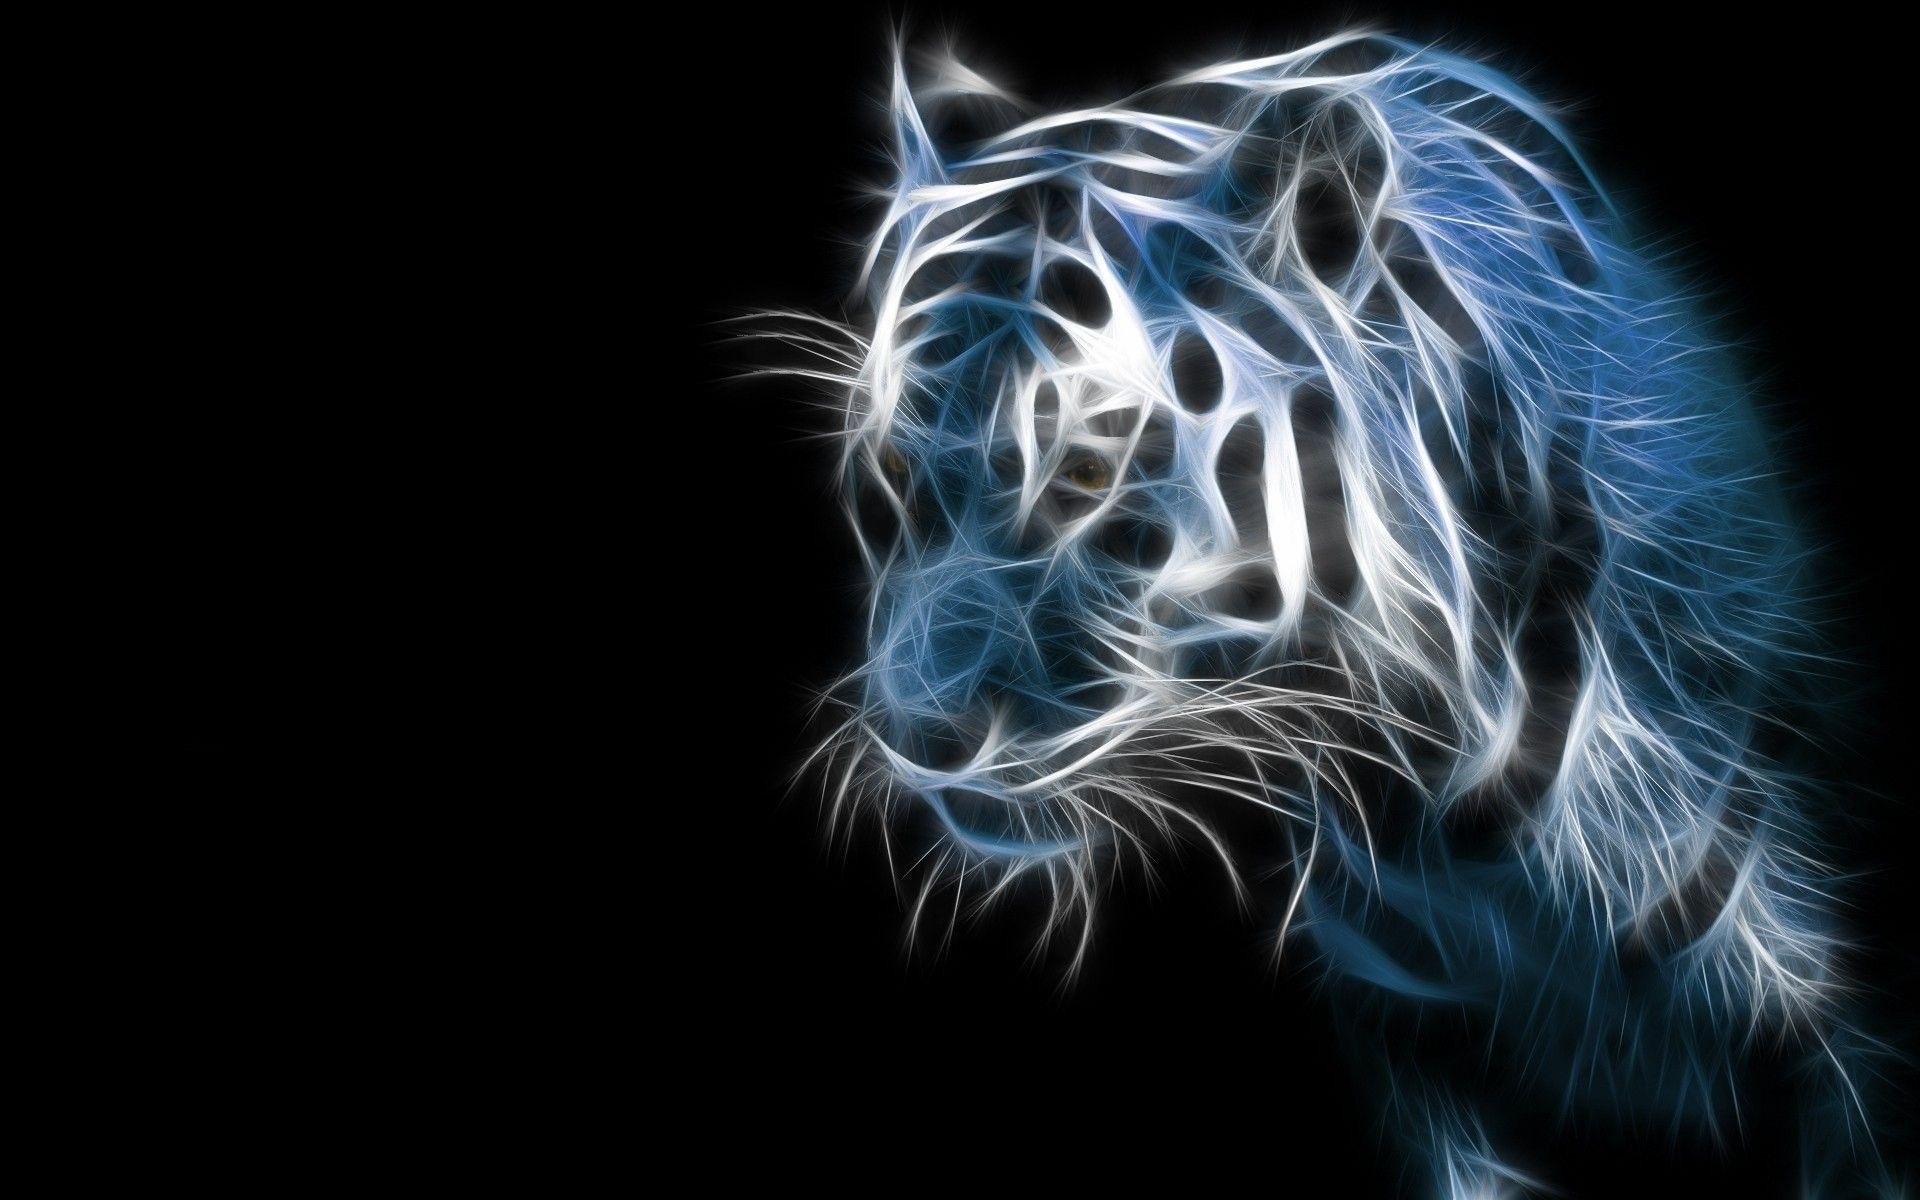 Cool Wallpapers For Desktop 69 Pictures